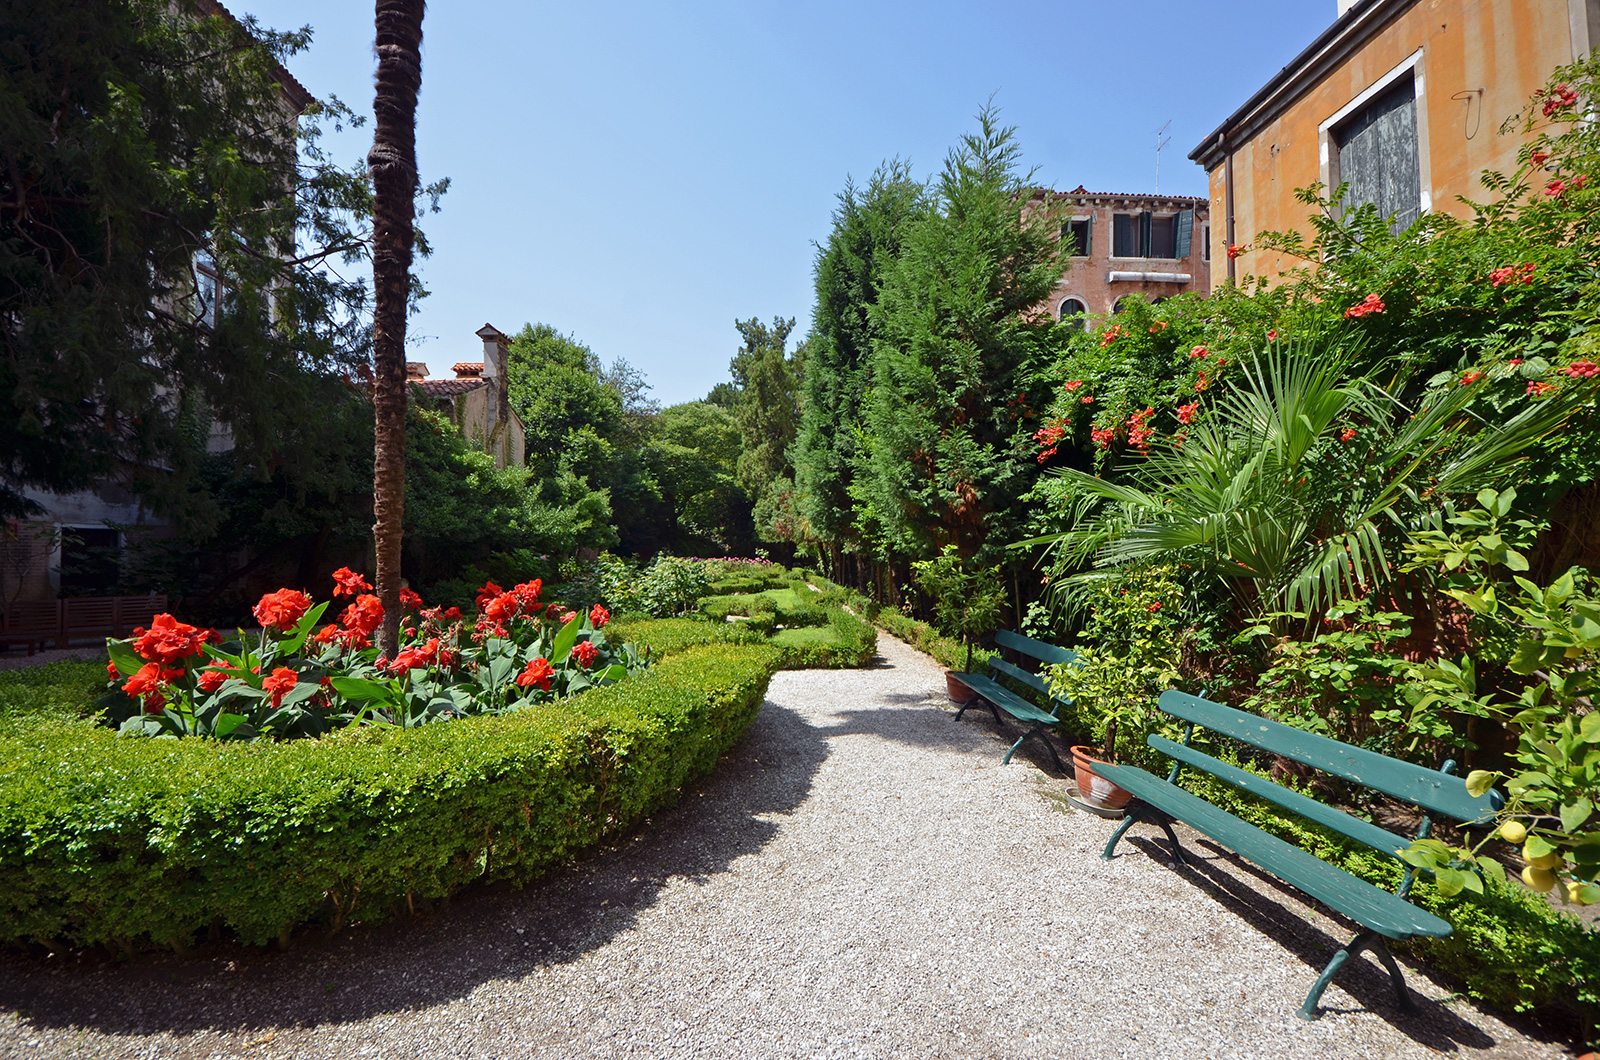 the shared garden of the Palazzo is simply beautiful